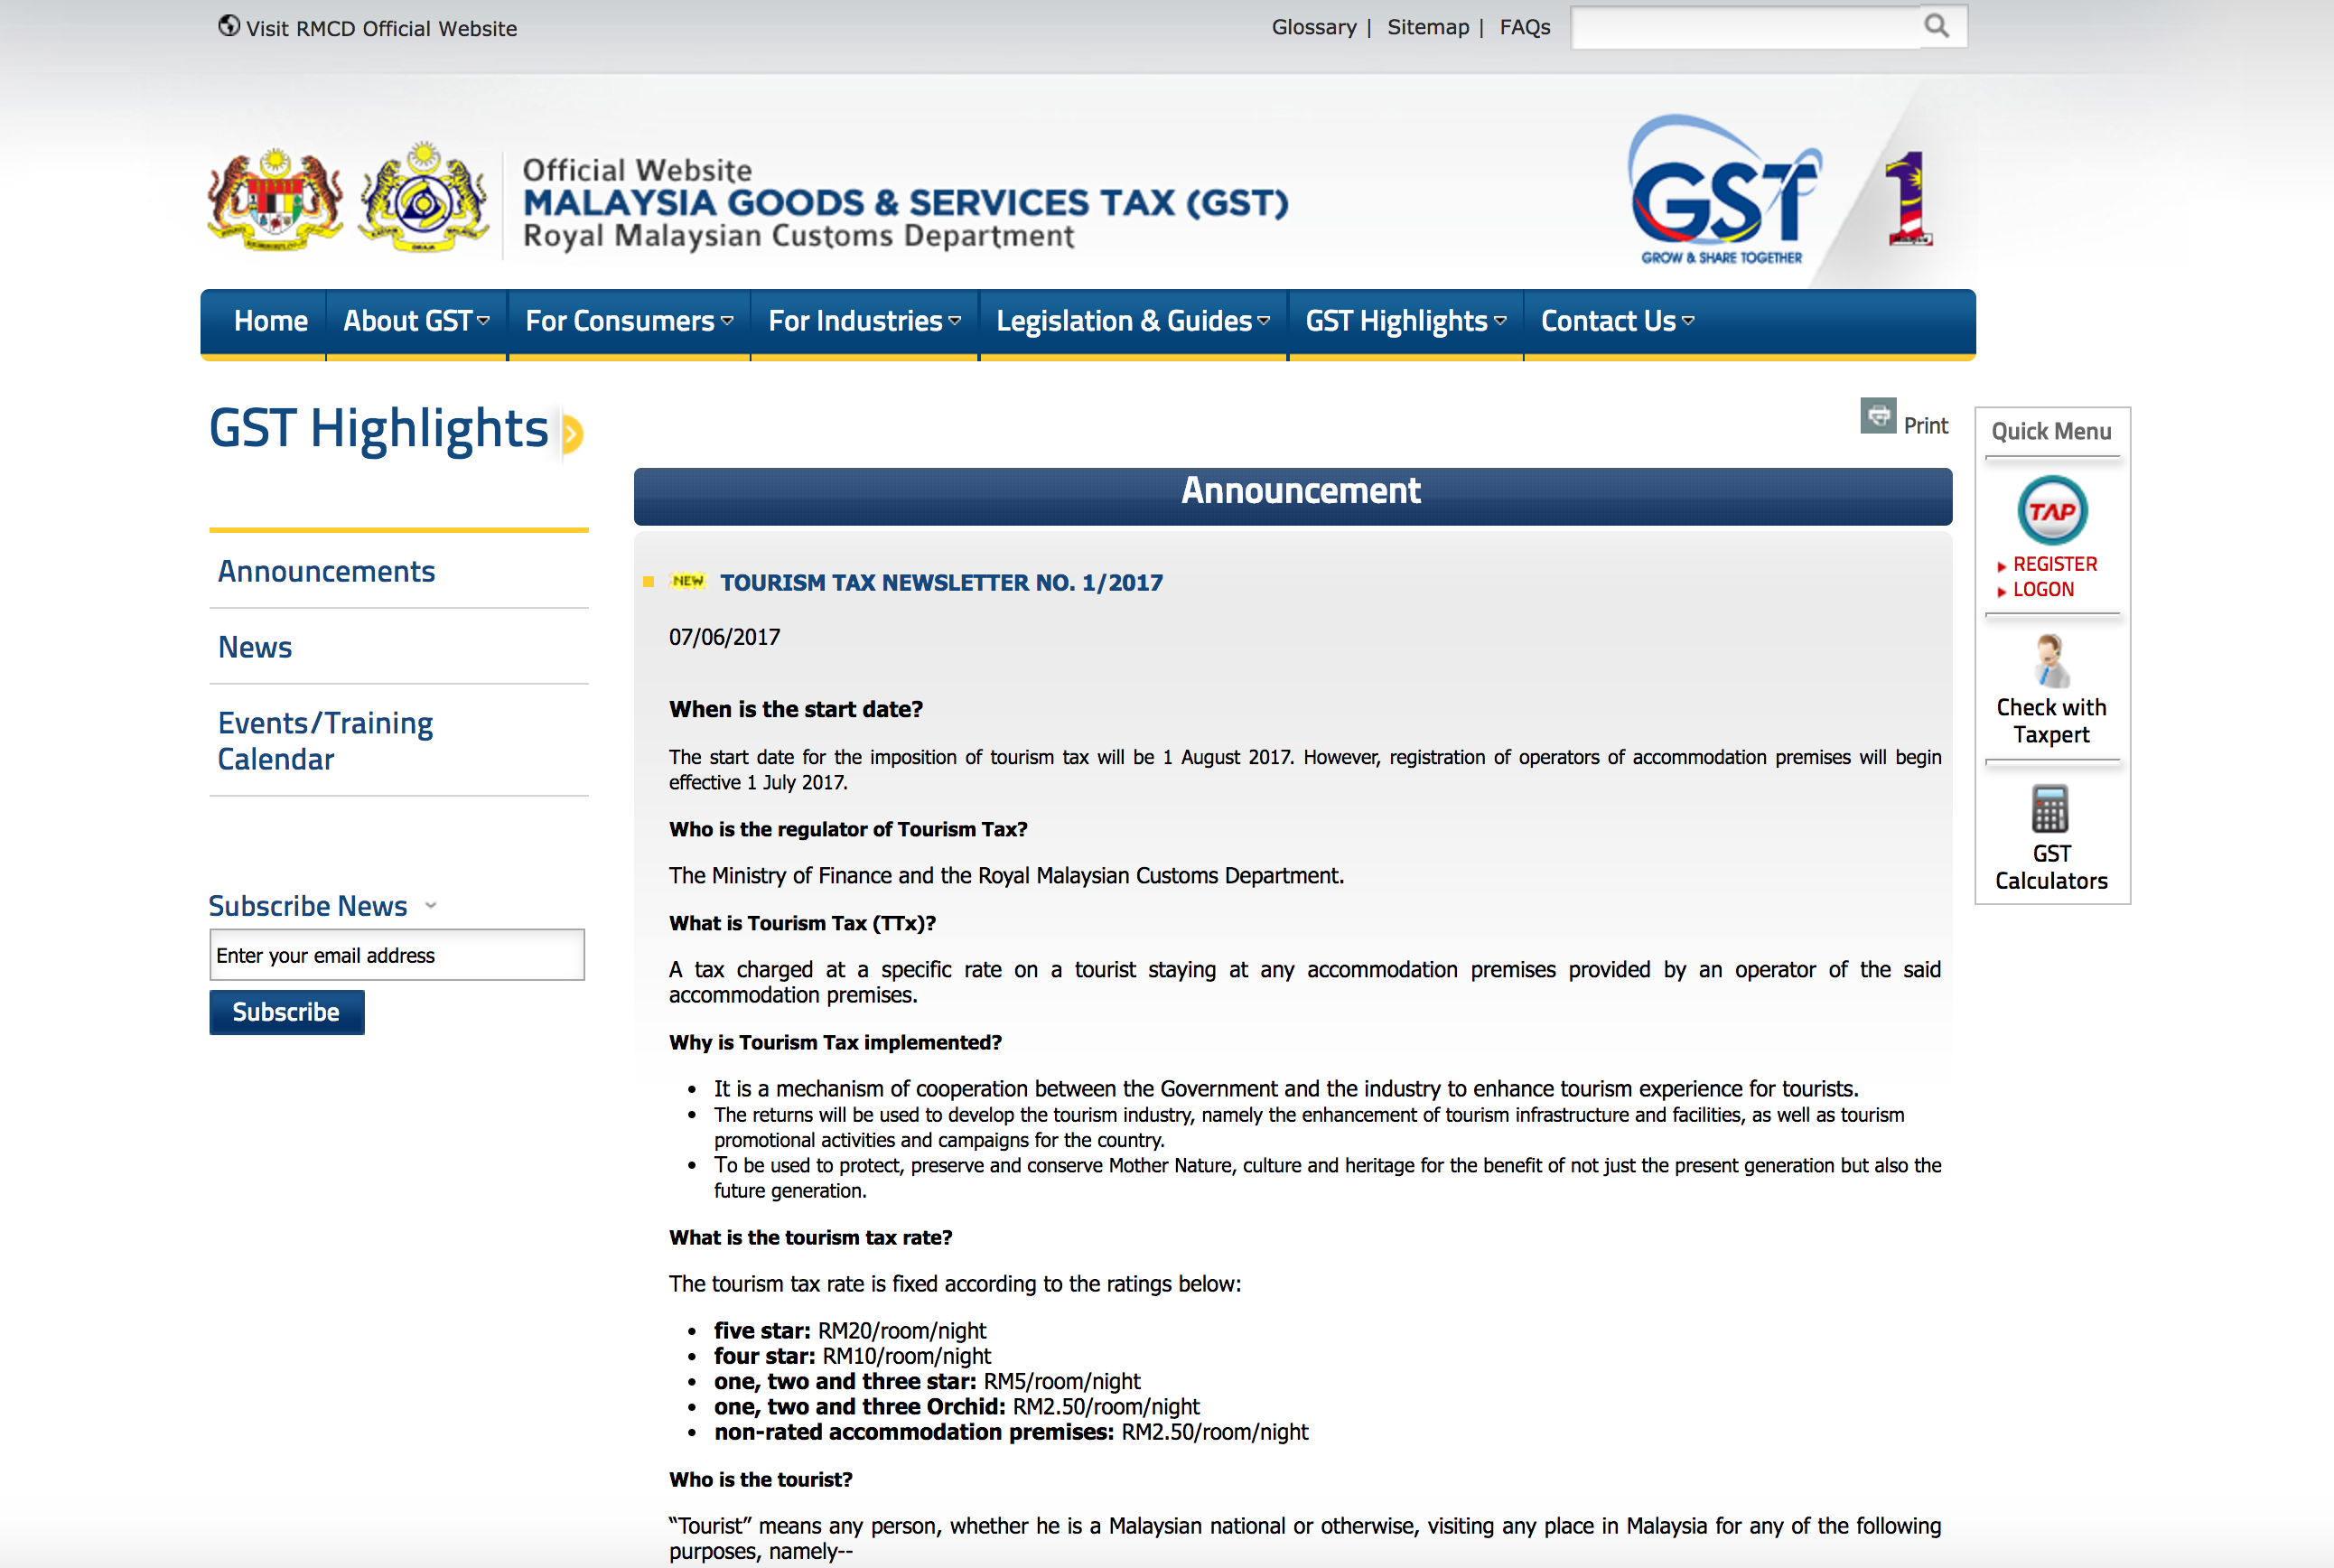 Image from Royal Malaysian Customs Department